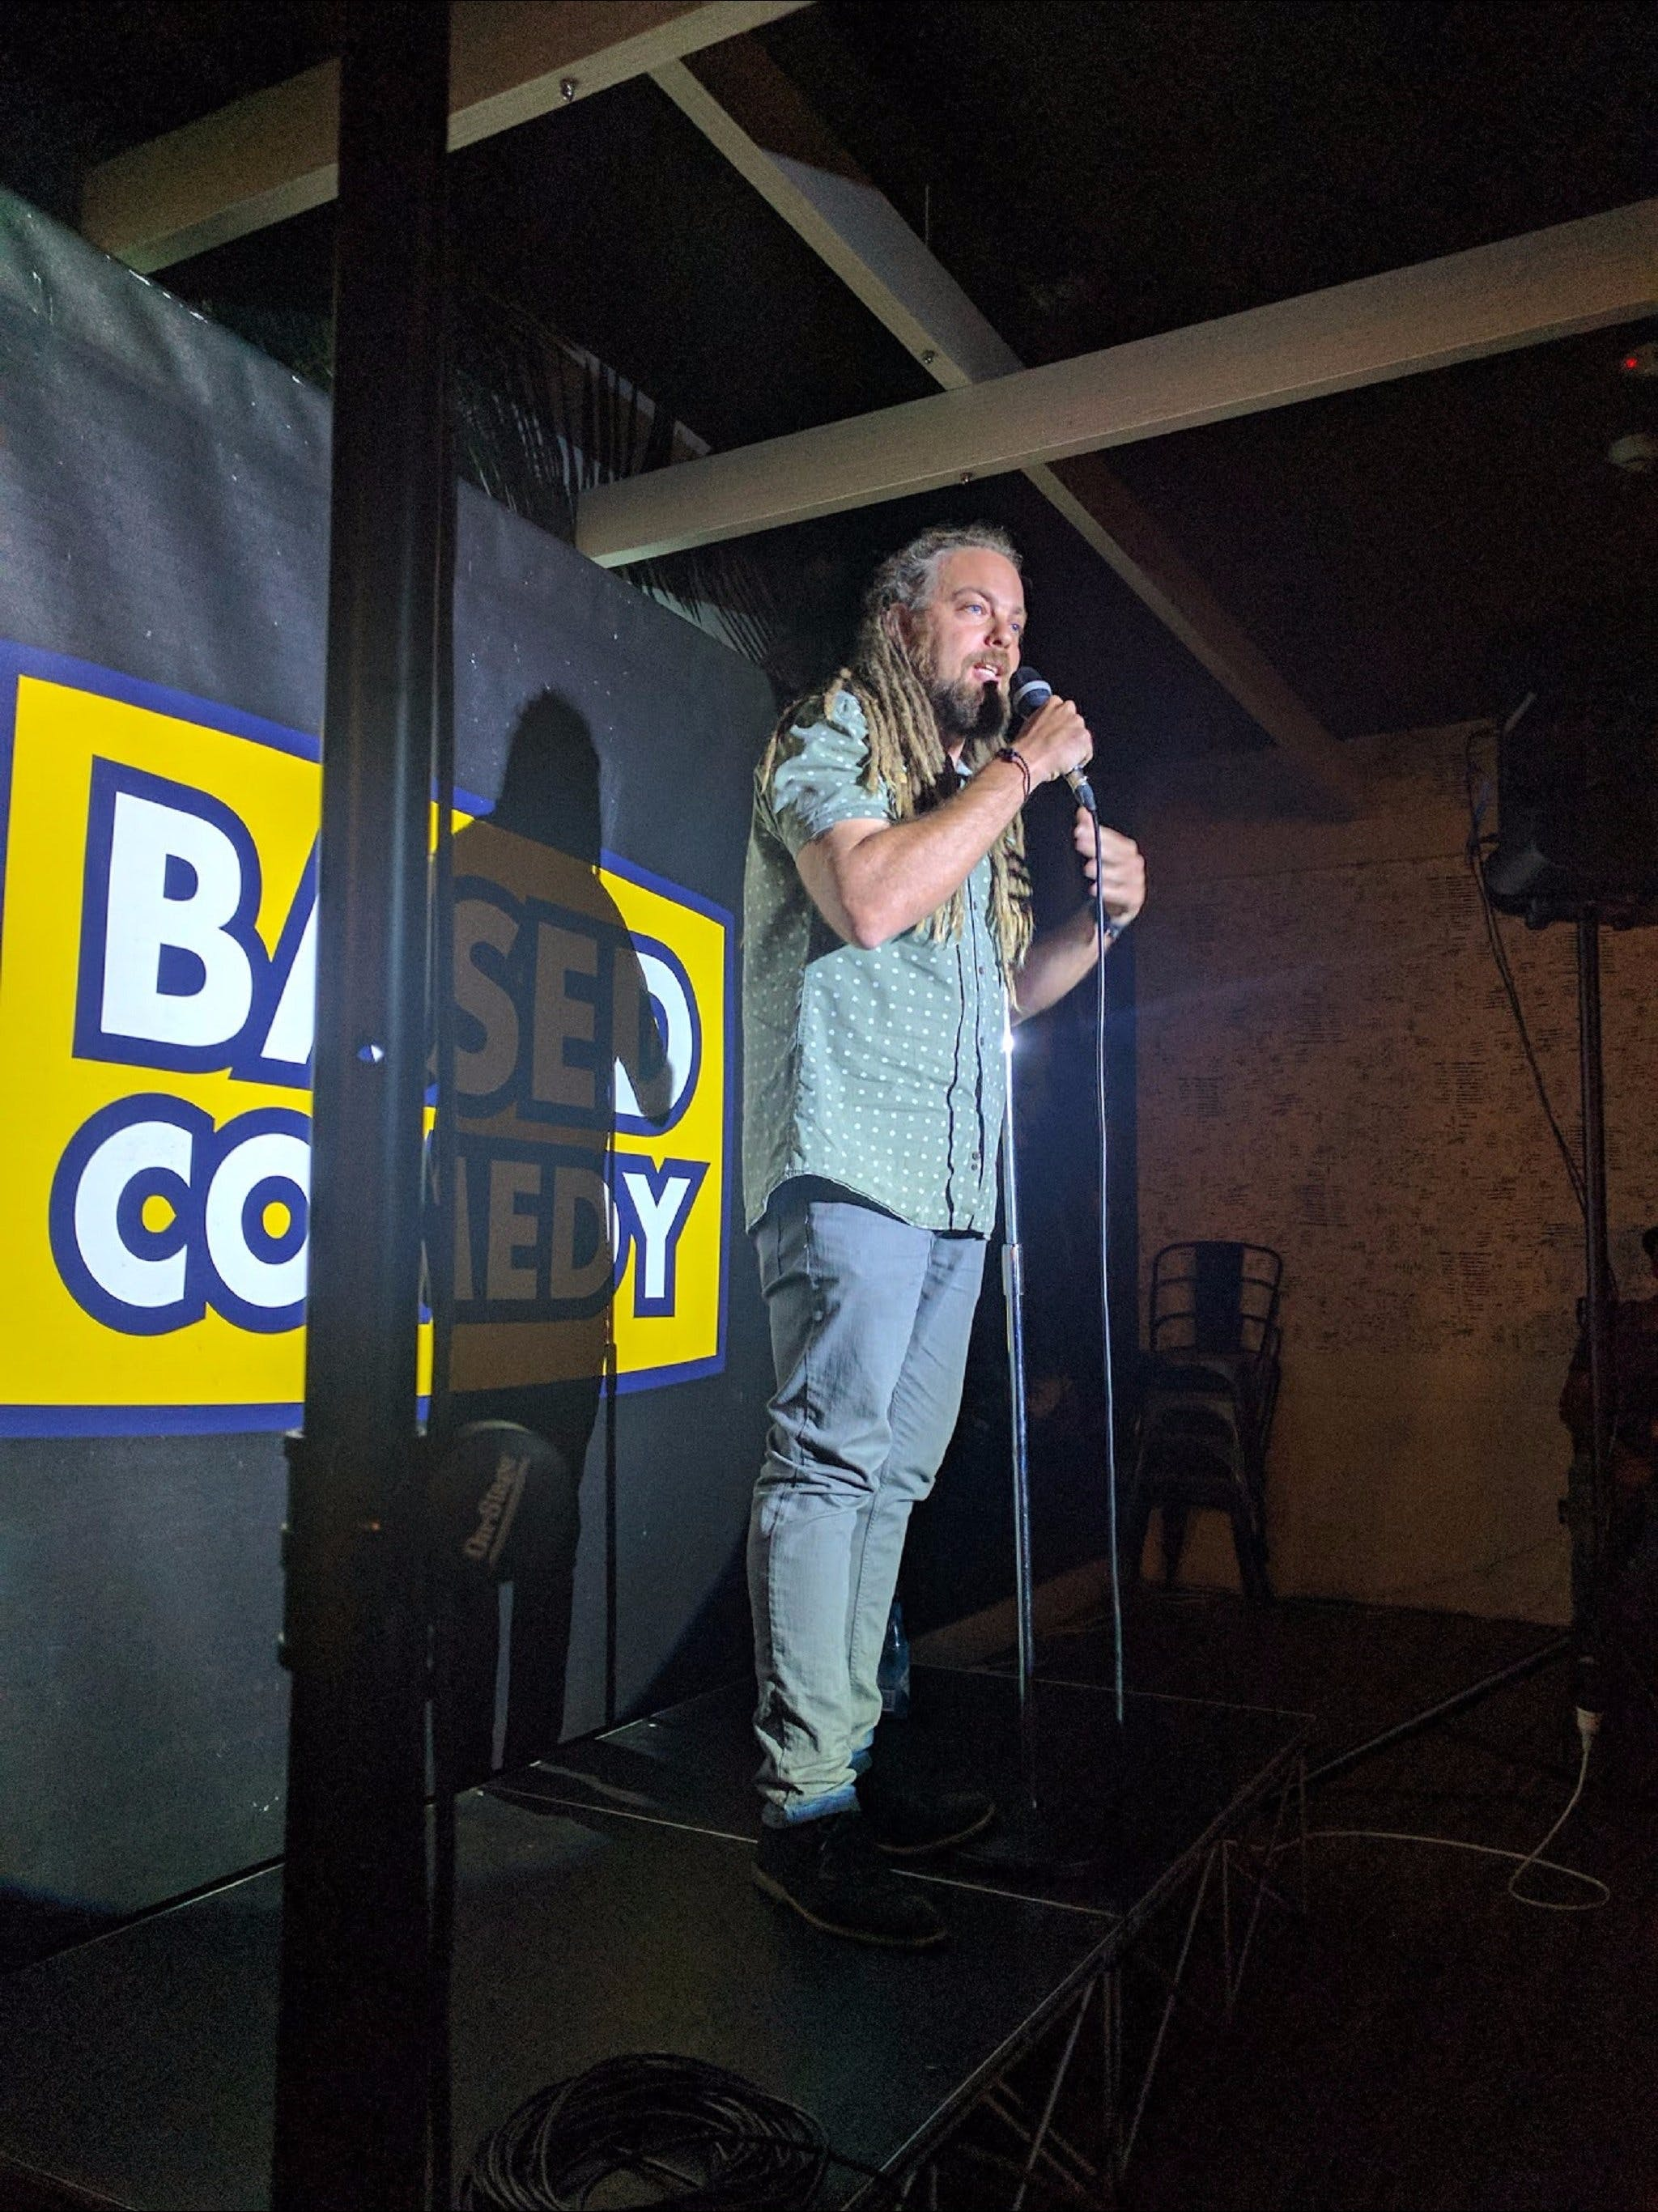 Based Comedy at The Palm Beach Hotel - Accommodation in Surfers Paradise